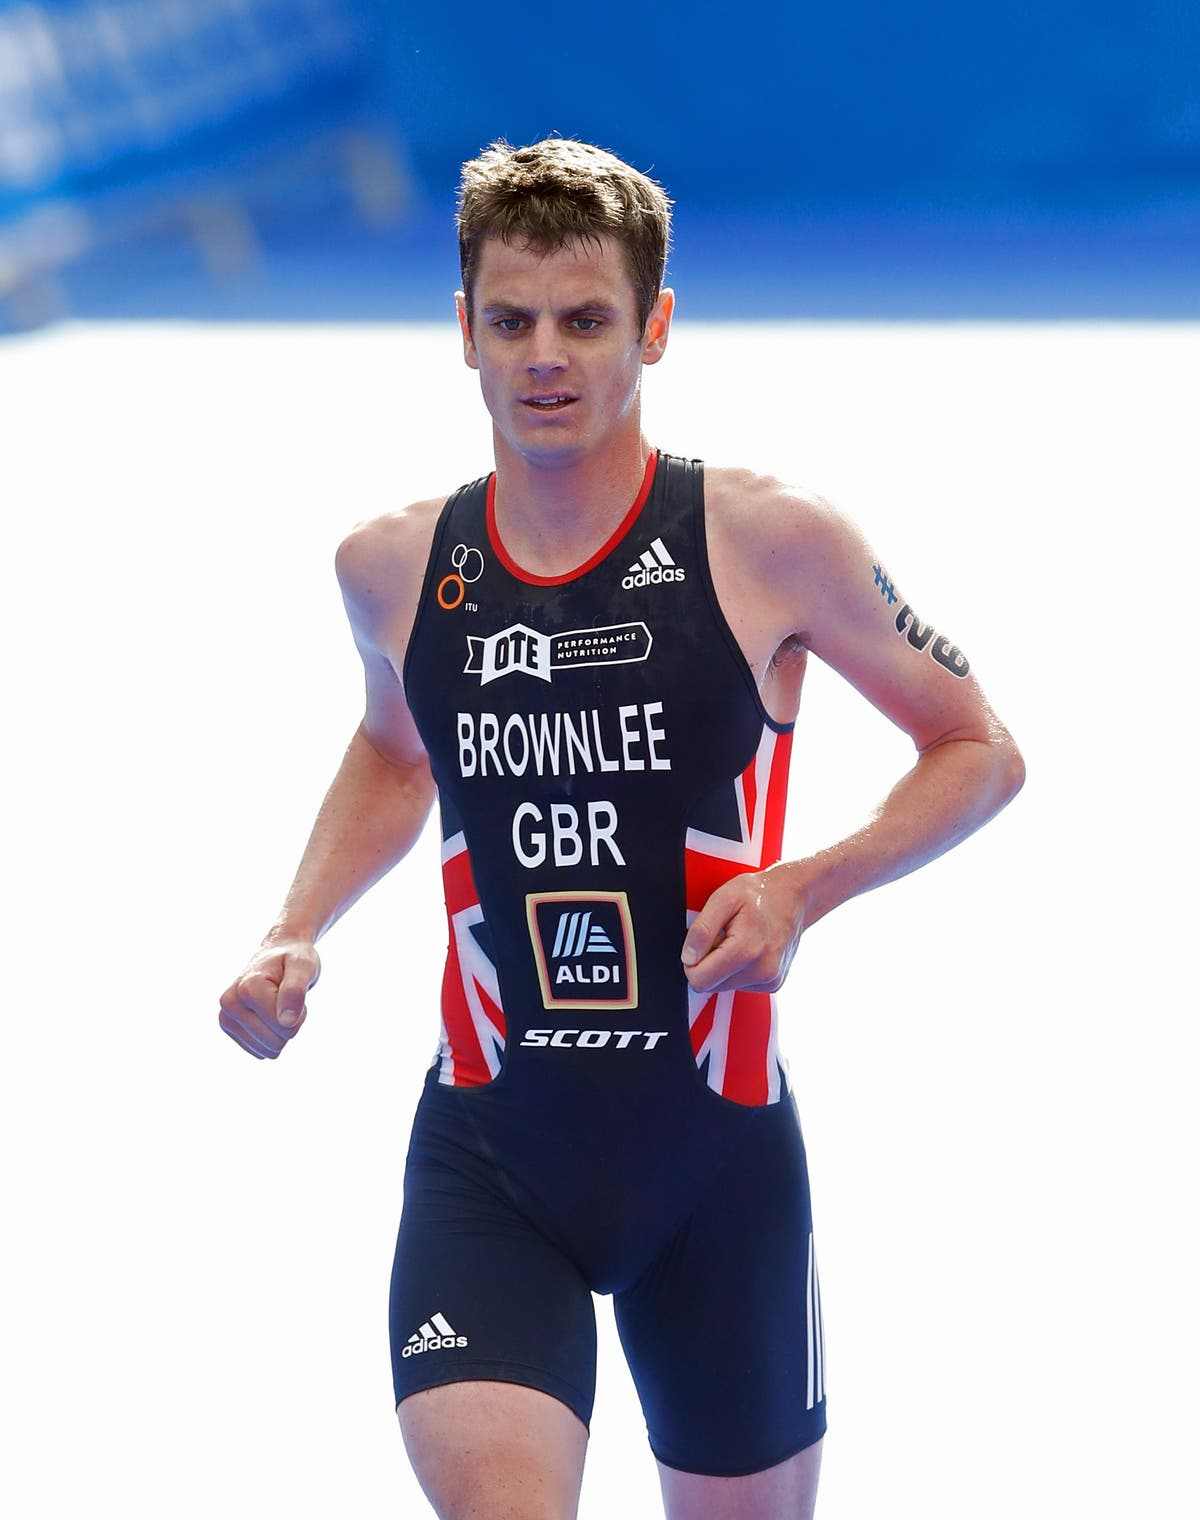 Success on Sardinia for Jonny Brownlee as brother Alistair withdraws early